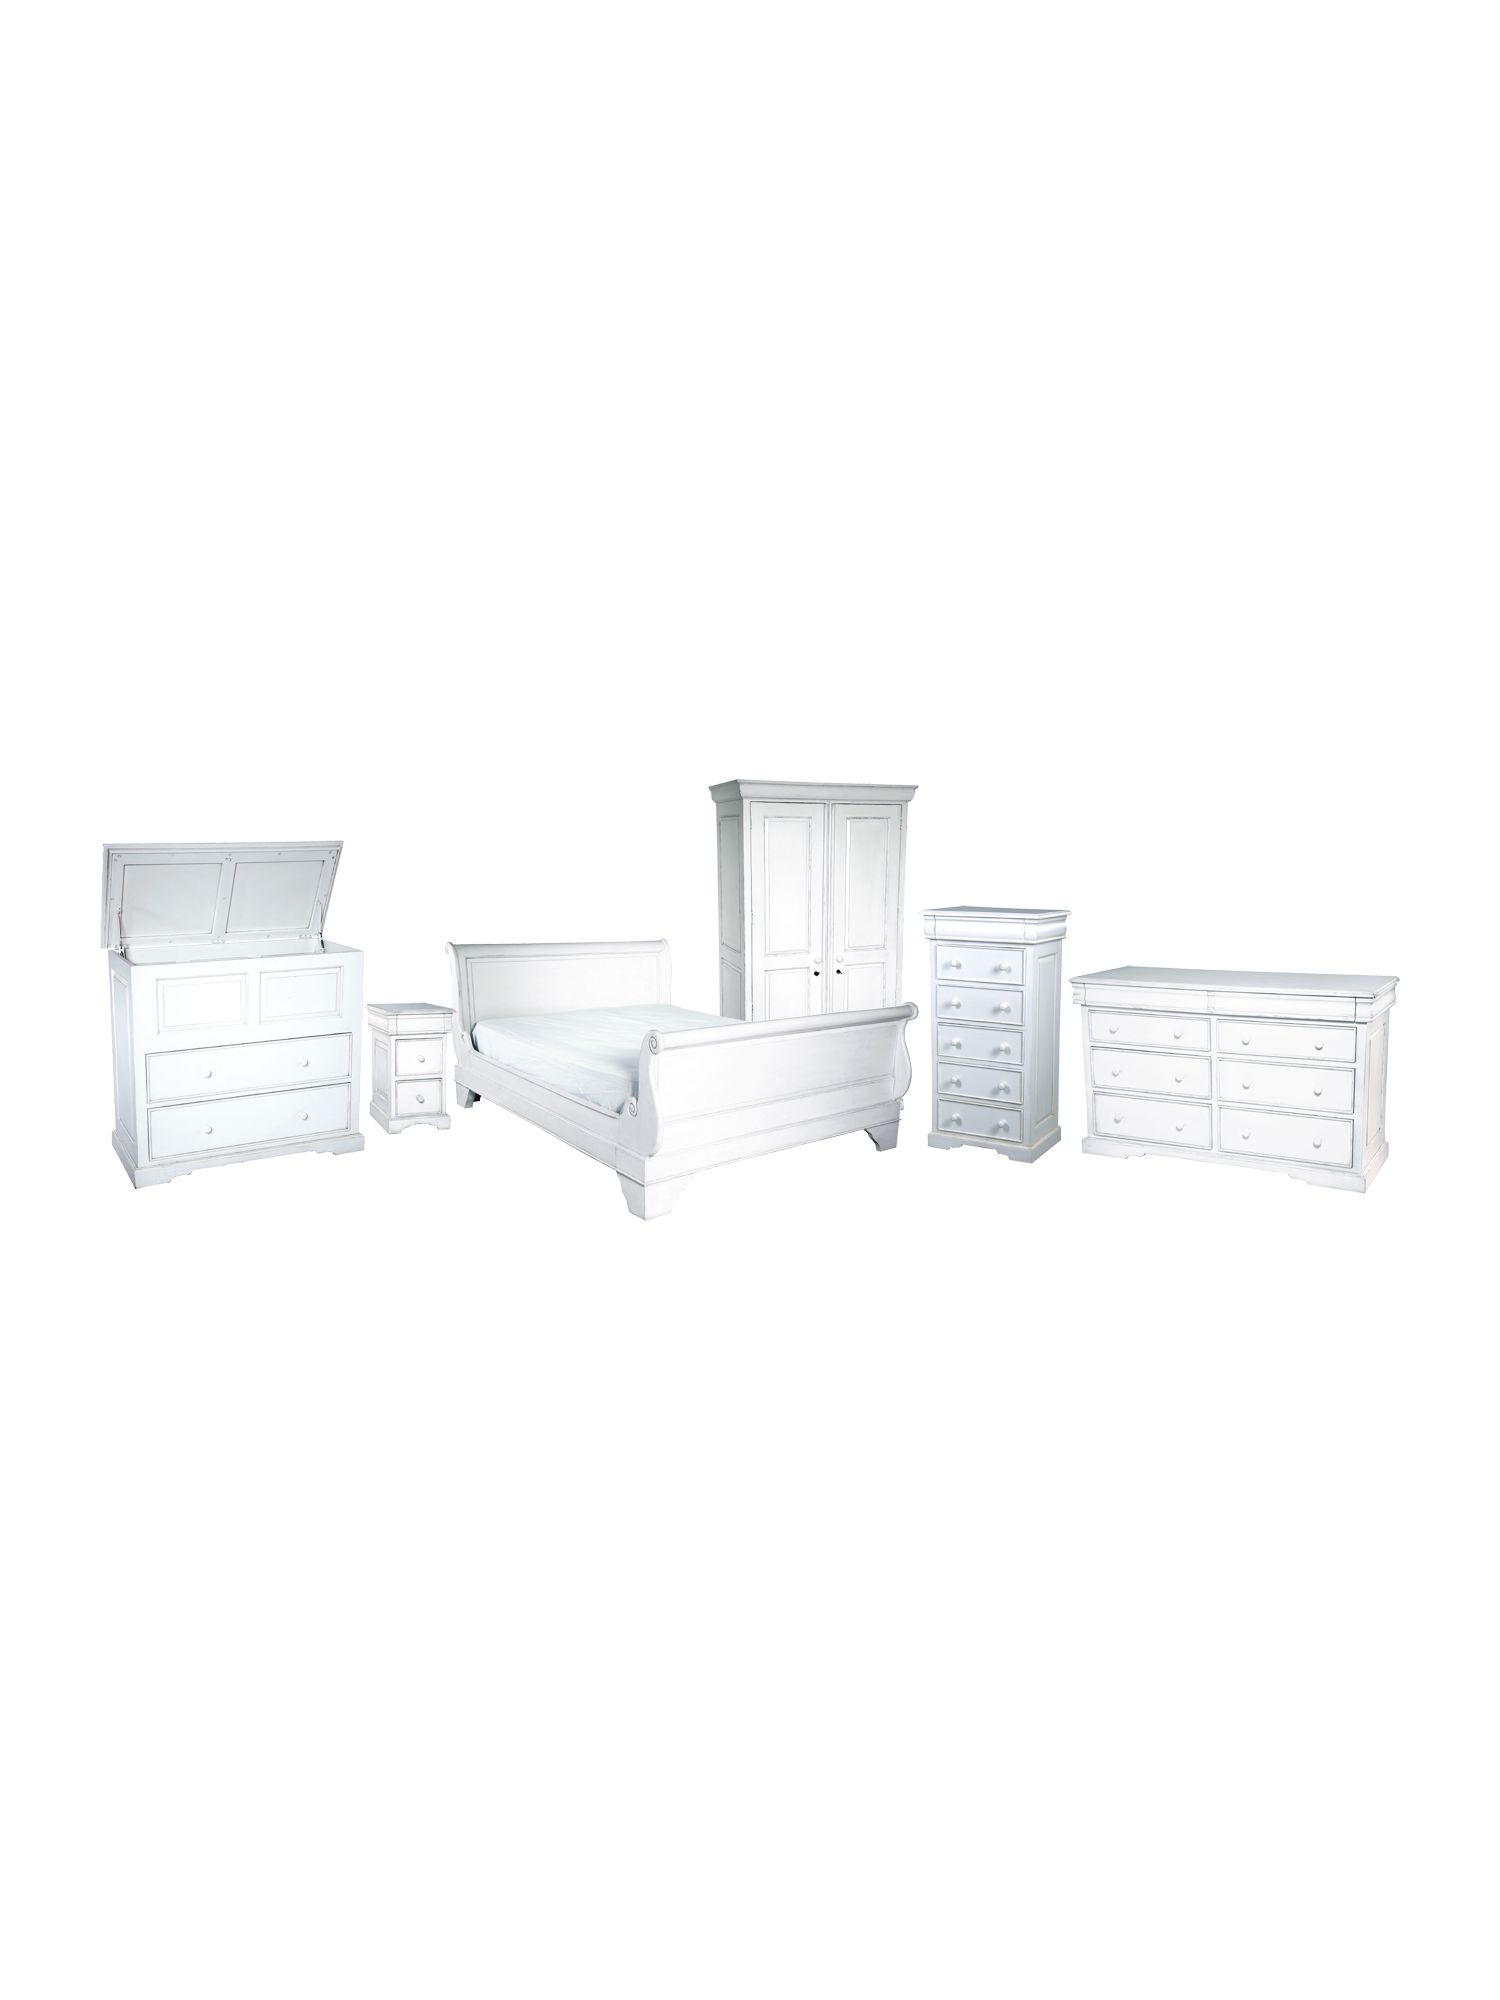 Martine bed furniture range